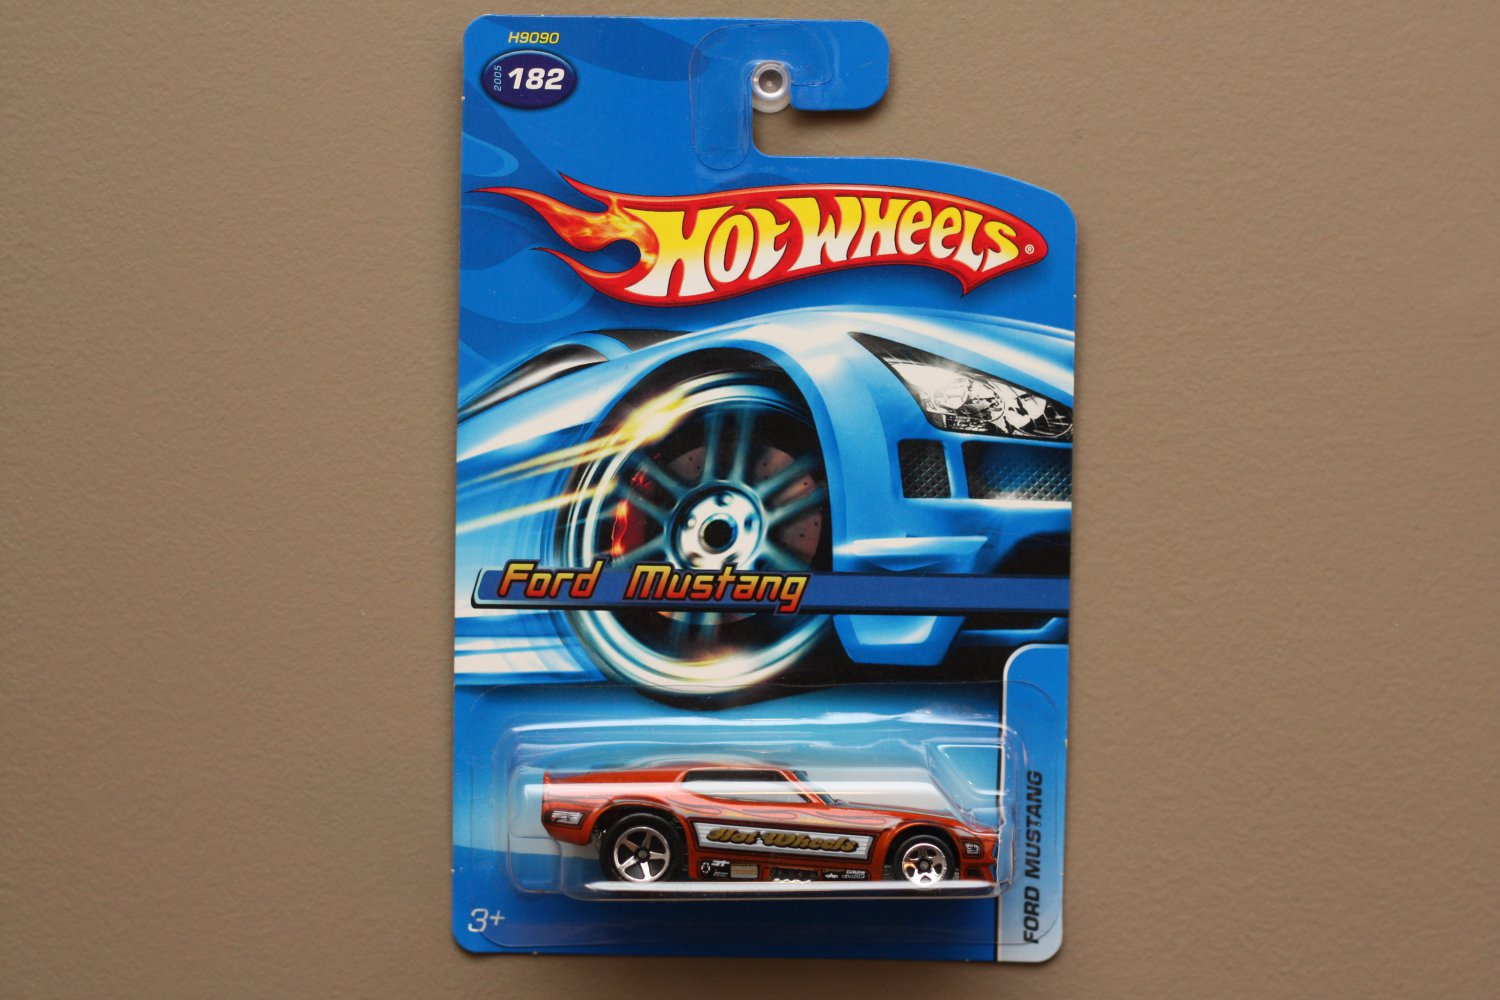 hot wheels 2005 collector series 39 71 mustang funny car. Black Bedroom Furniture Sets. Home Design Ideas